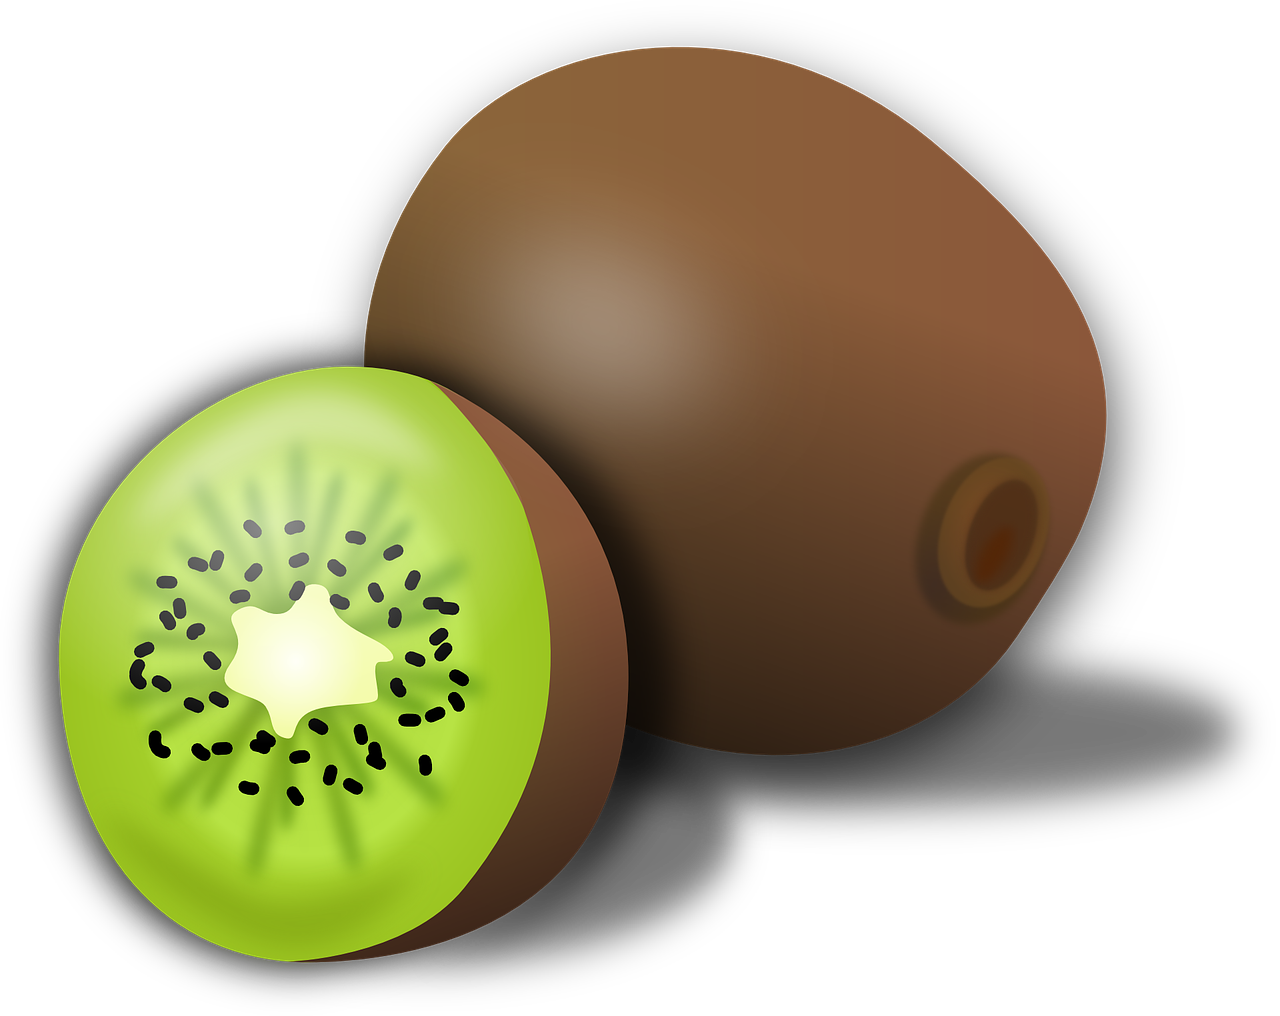 kiwi kiwifruit fruit free photo